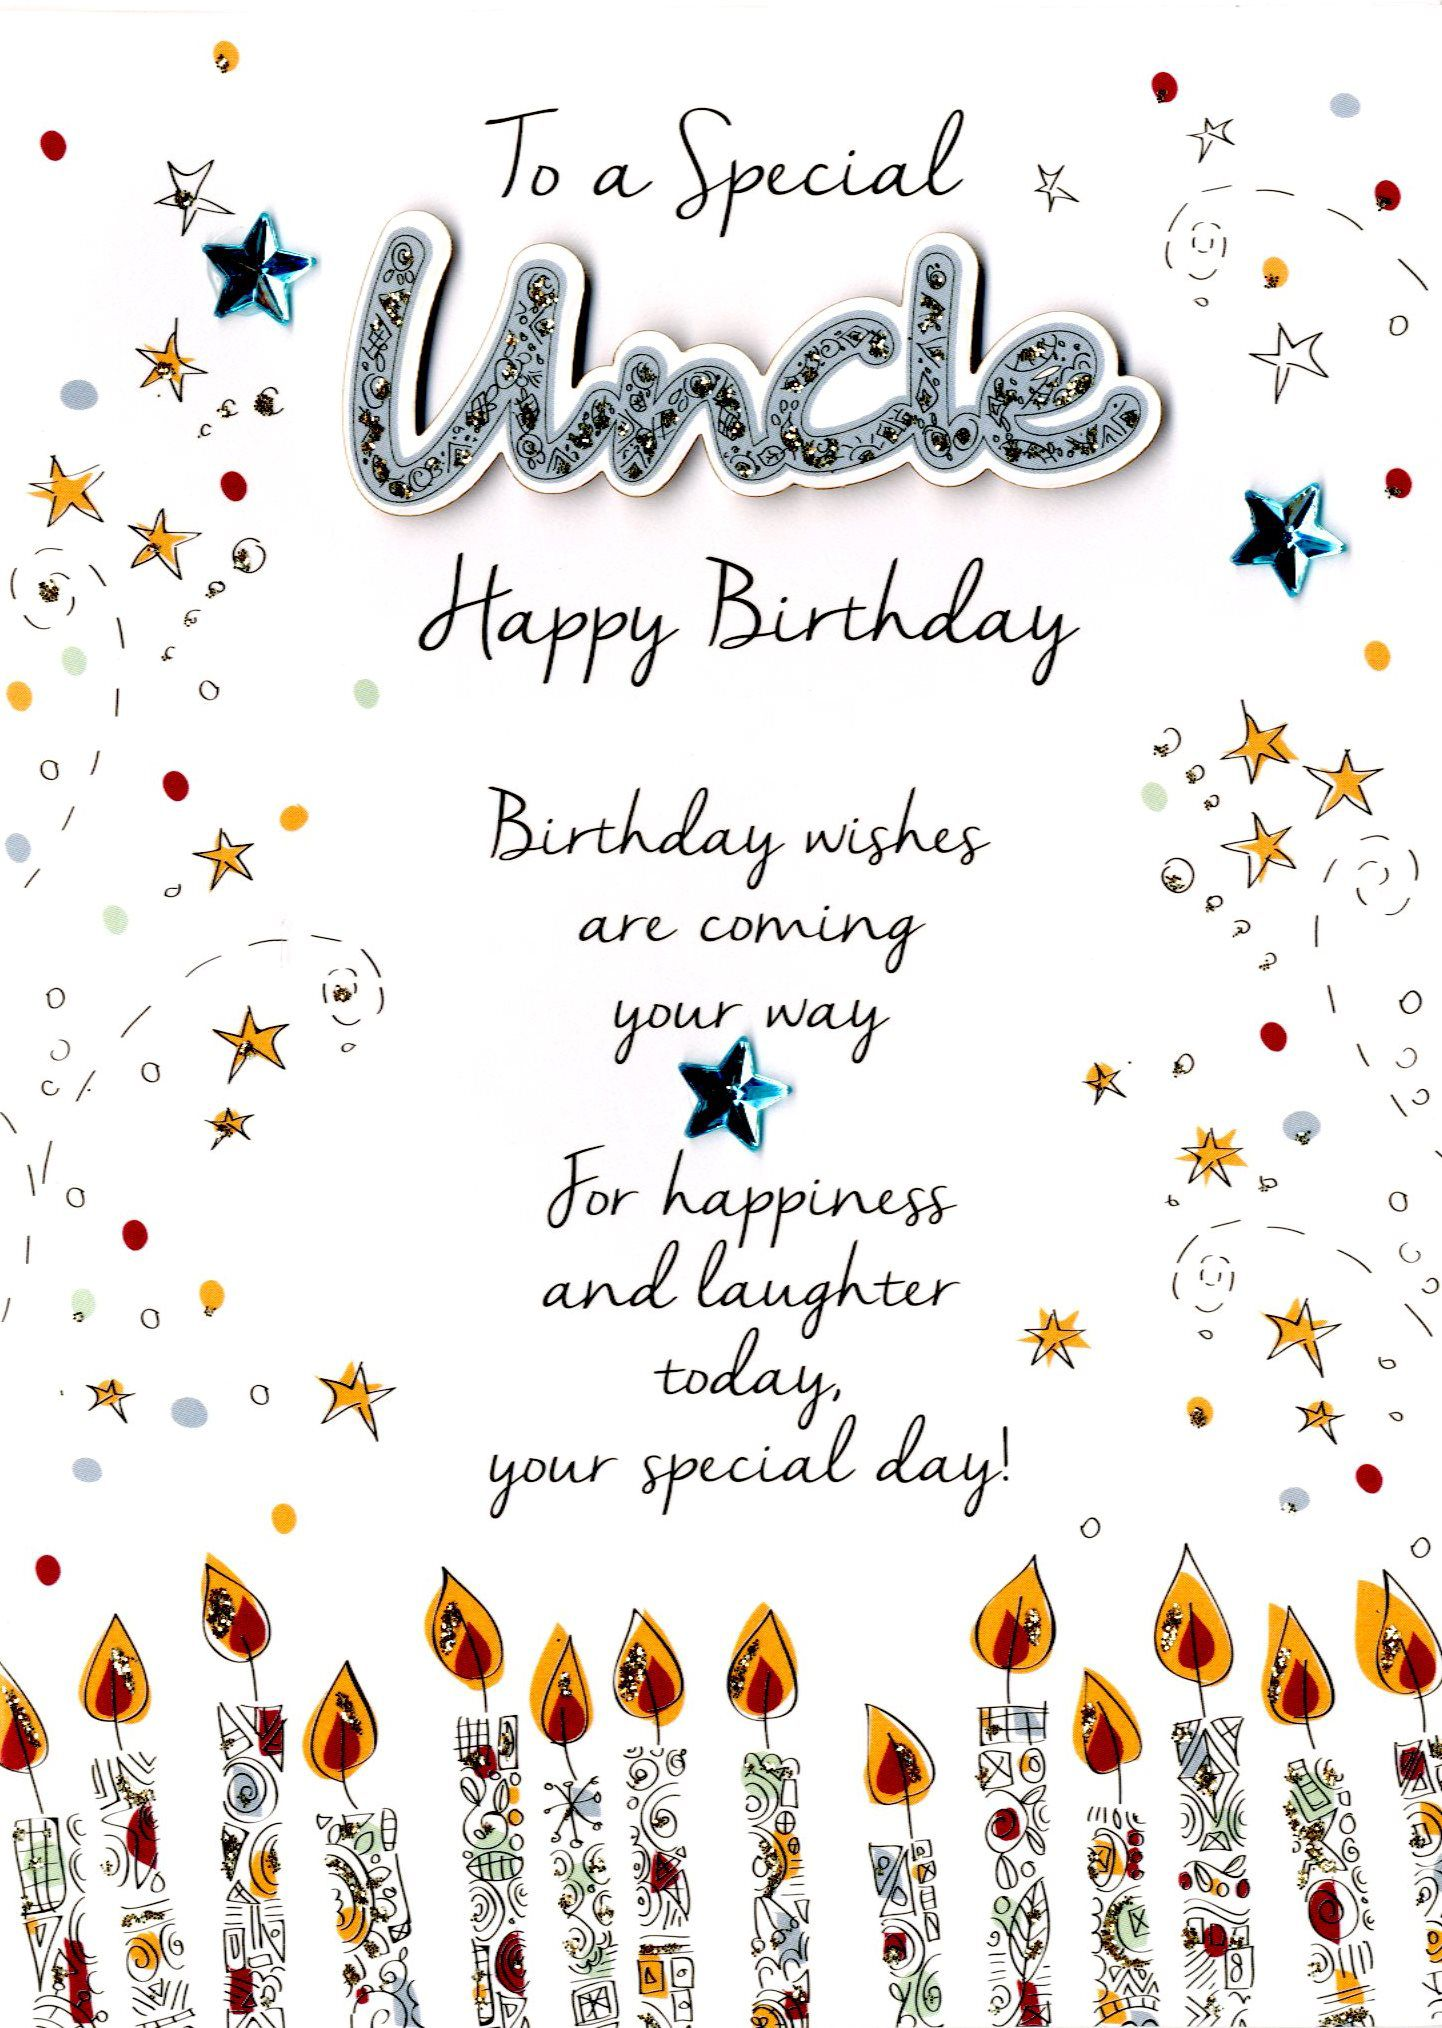 Happy Birthday Wishes For Uncle In 2018 Happy Birthday Wishes For